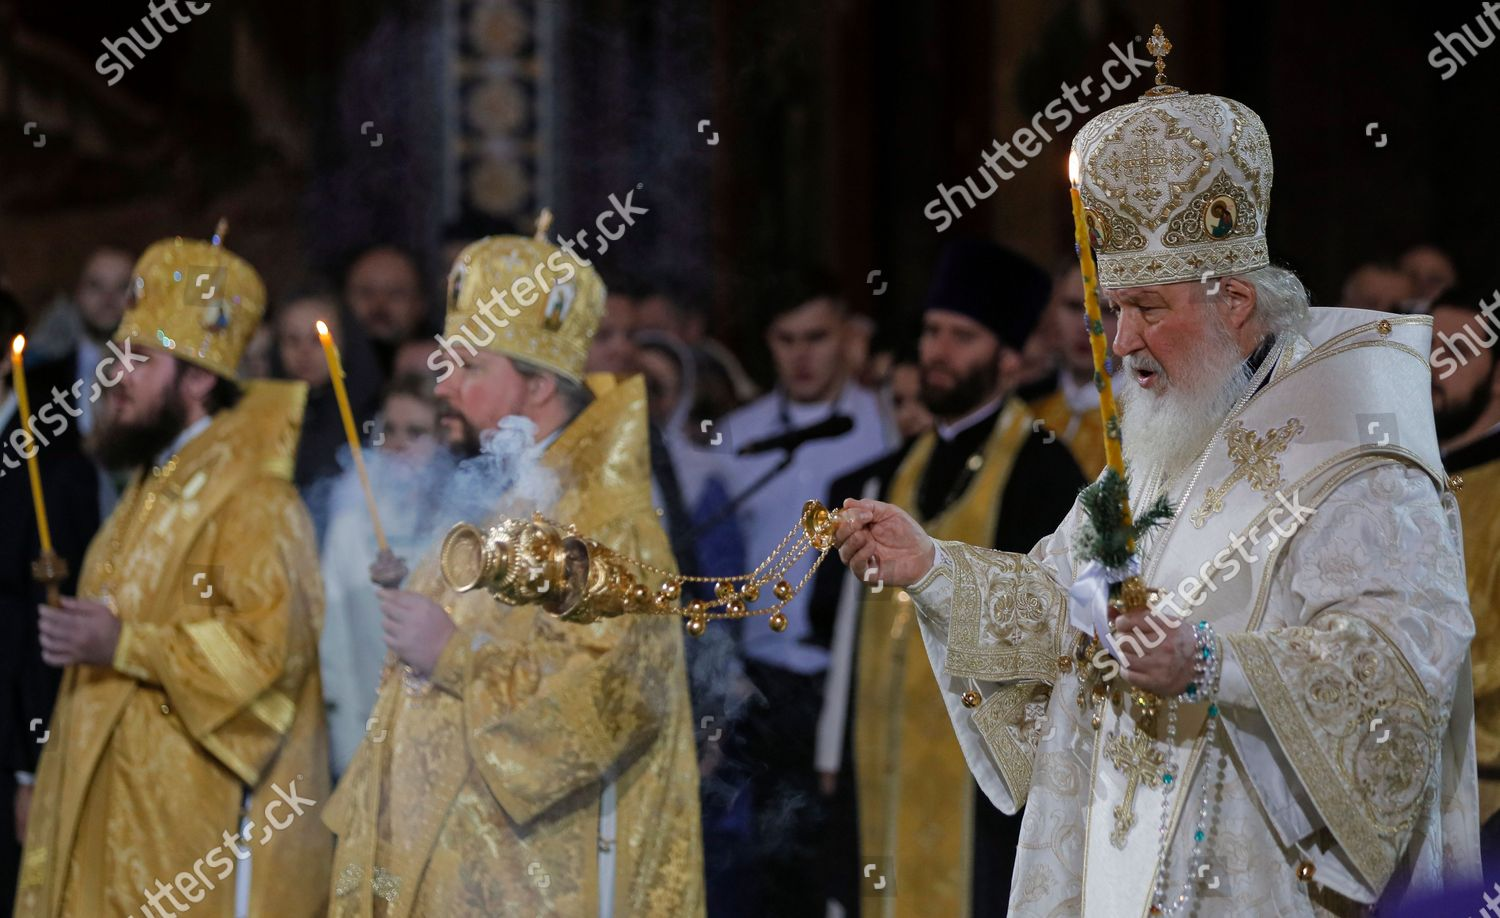 Kirill Christmas Photos Jan 2020 Patriarch Moscow All Russia Kirill R leads Editorial Stock Photo